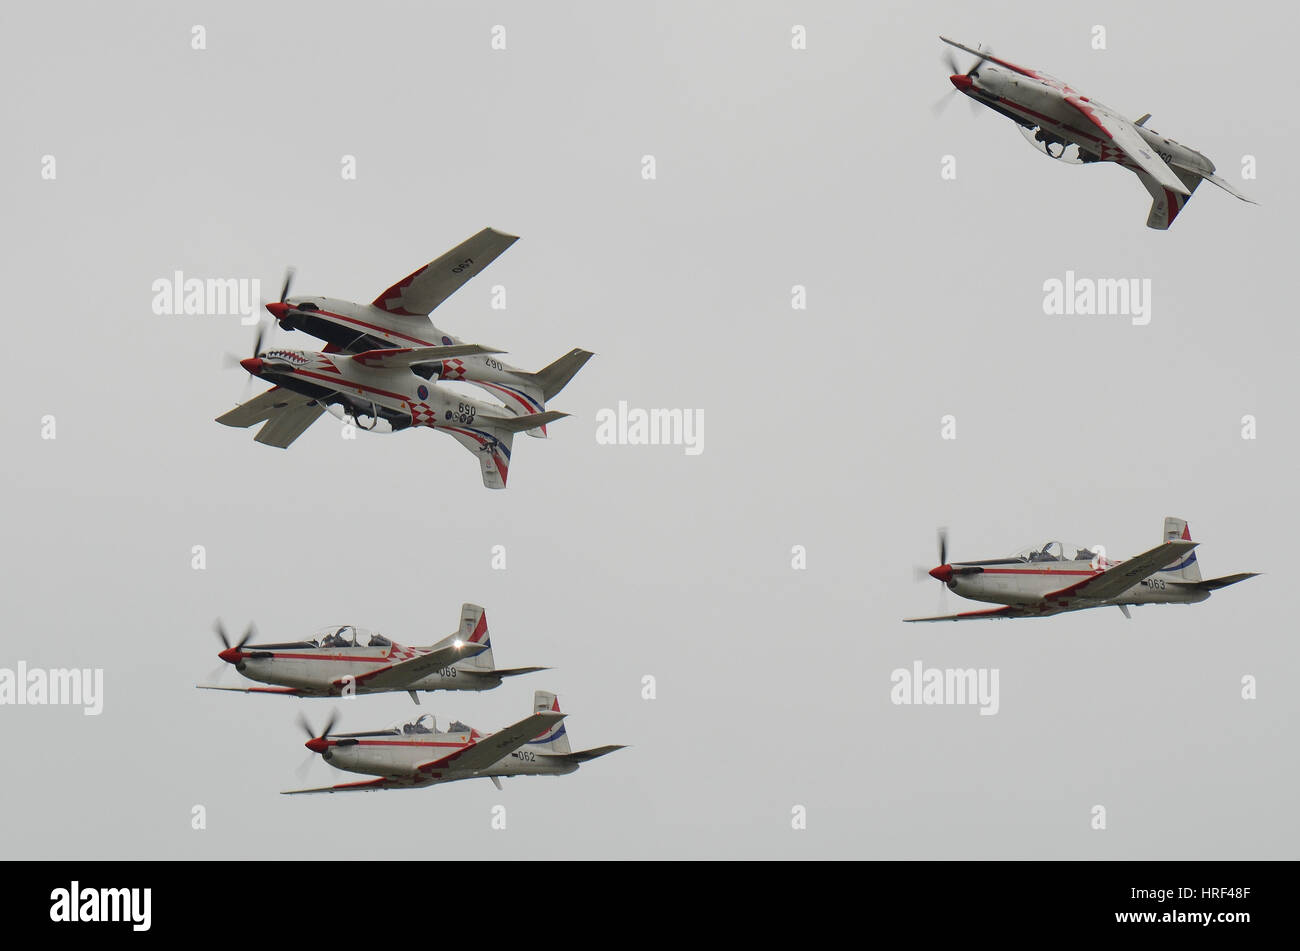 Croatian display team Wings of Storm 'Krila Oluje' at the Royal International Air Tattoo, Fairford. Space - Stock Image